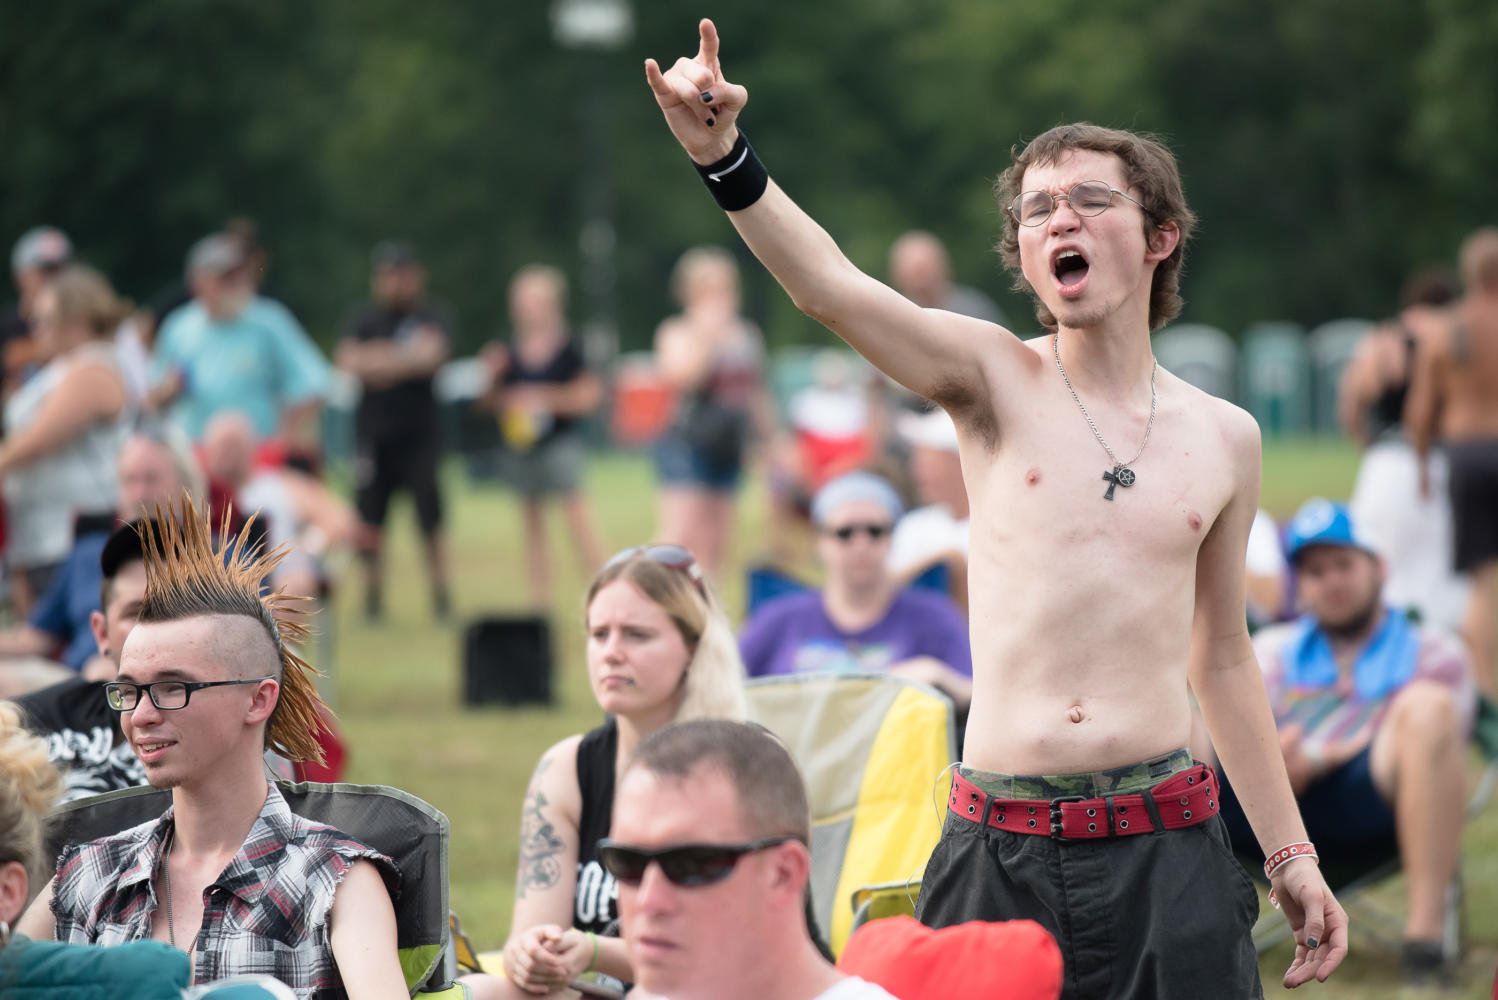 Zane Risley, of Ridgeway, pumps his fist in the air while watching Hell Yeah perform Sunday, Aug. 20, 2017, during the third day of Moonstock at Walker's Bluff Winery in Carterville.  (William Cooley | @Wcooley1980)